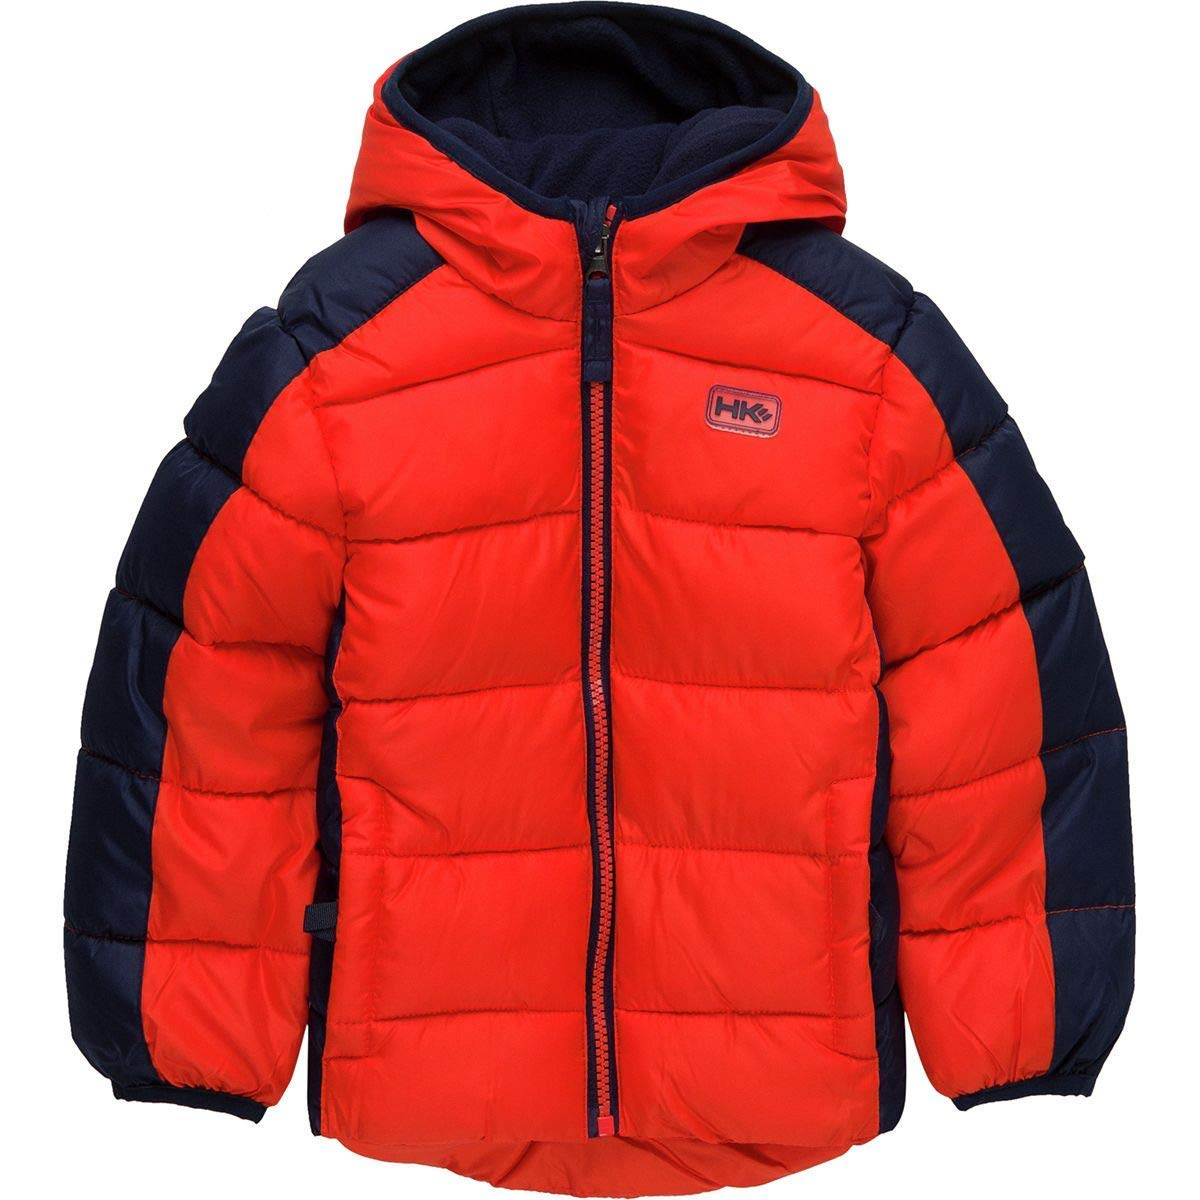 810f0a0a9 Buy Rothschild Baby Boys Quilted Footed Puffer Snowsuit with ...